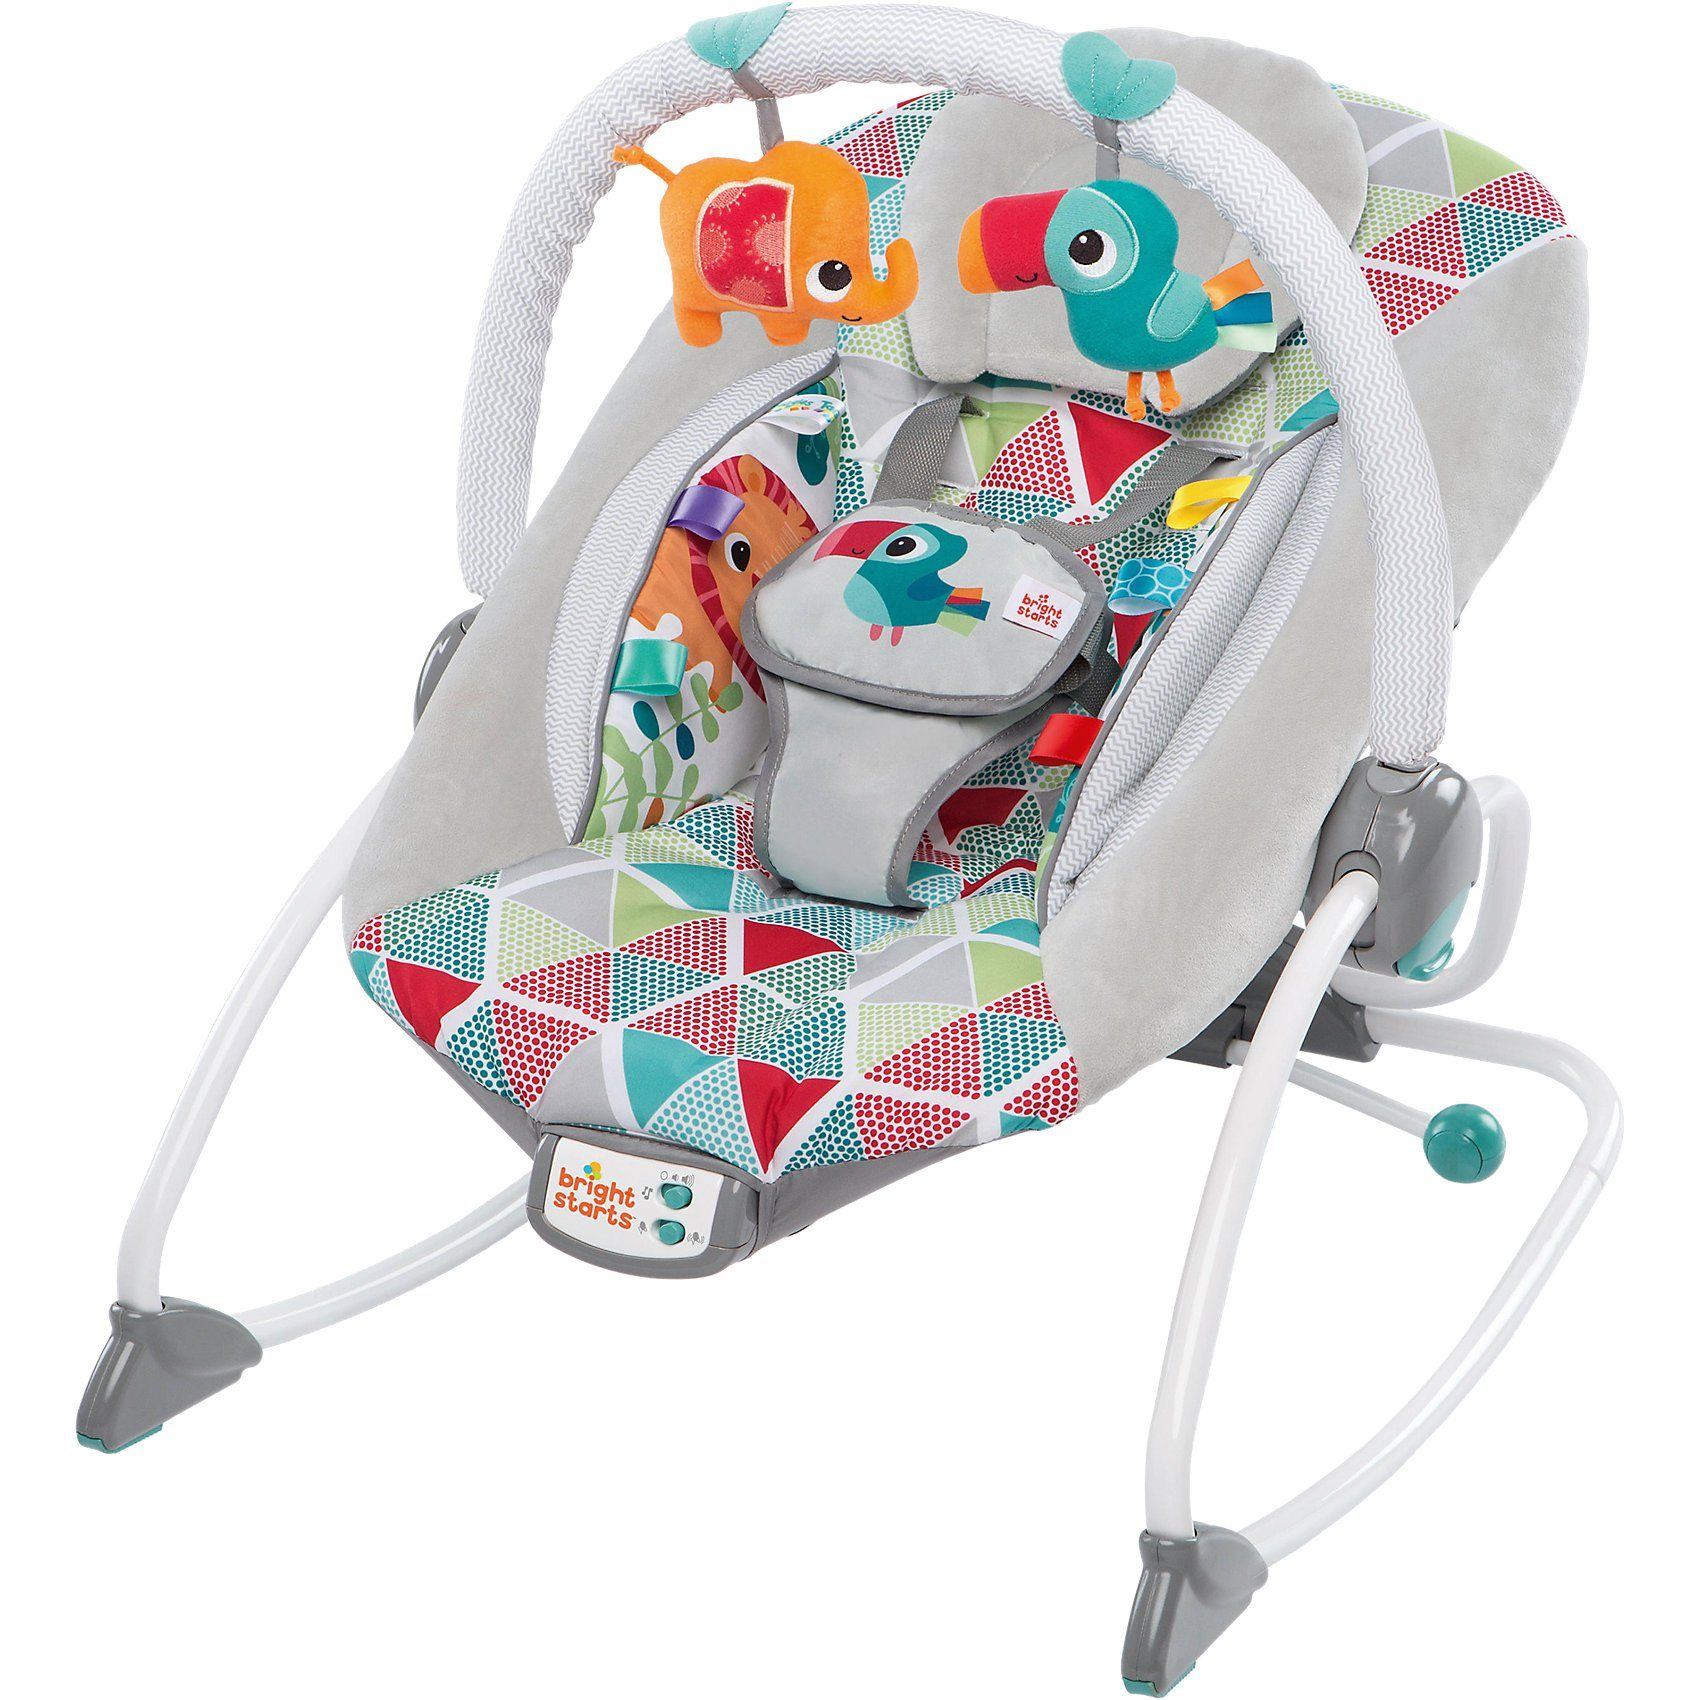 Big Wippe Kids Ii Bright Starts Toucan Tango 3 In 1 Baby To Big Kid Wippe Online Kaufen Otto